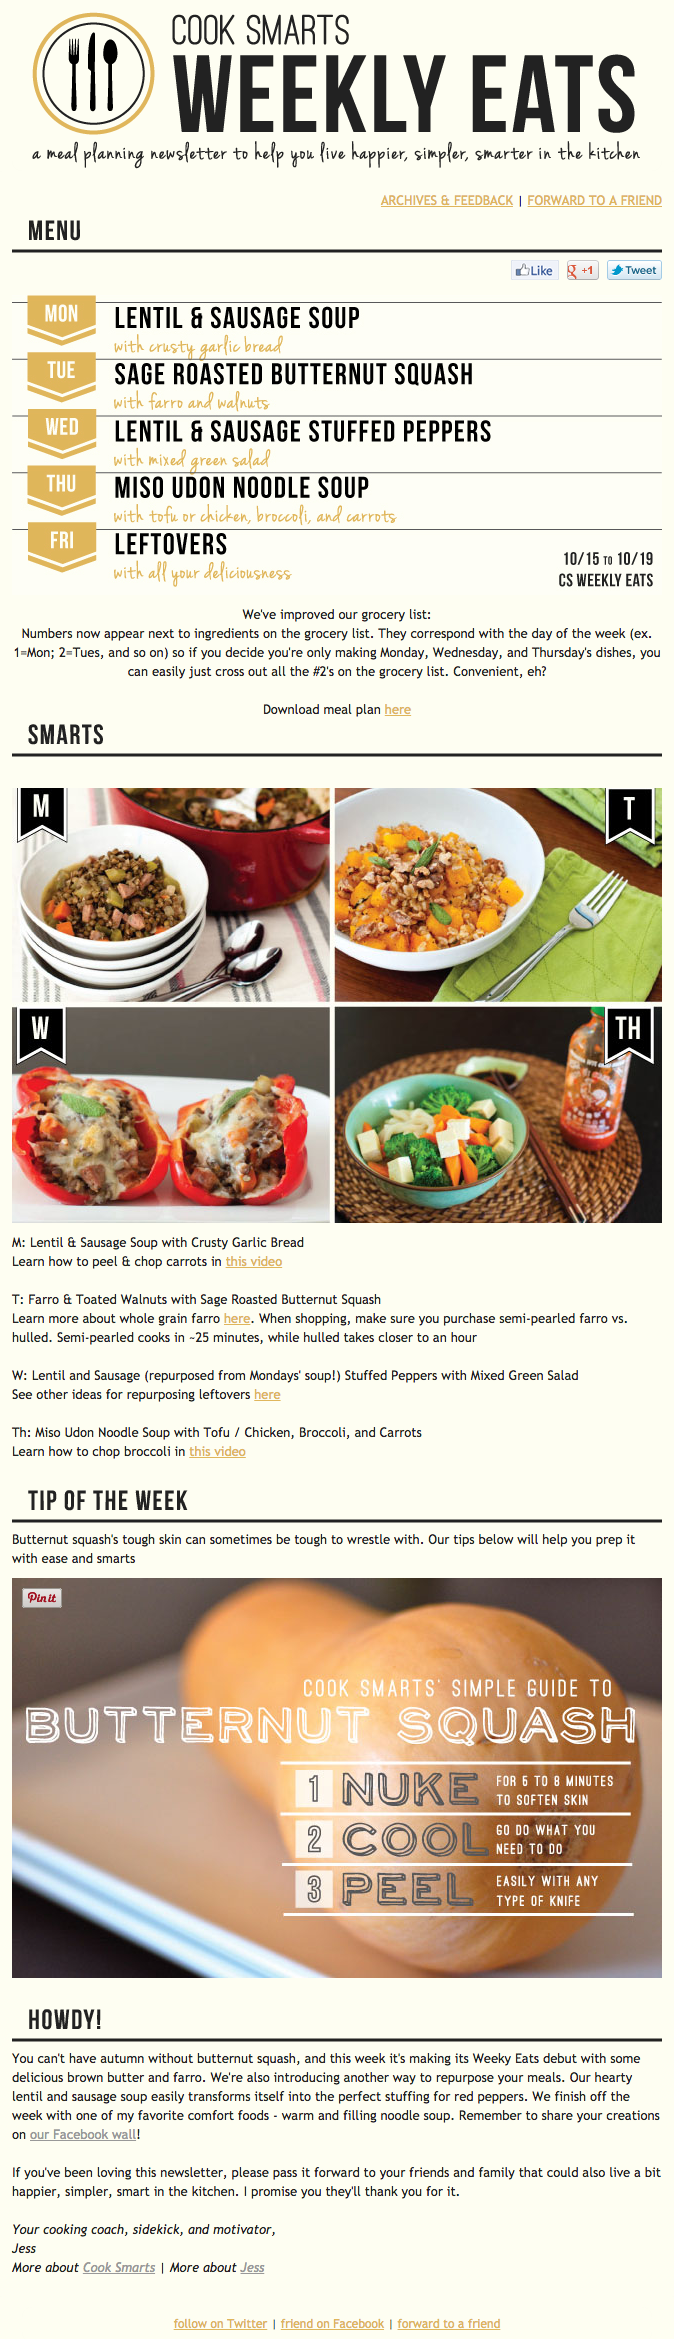 Email marketing campaign on Weekly Eats by Cook Smarts